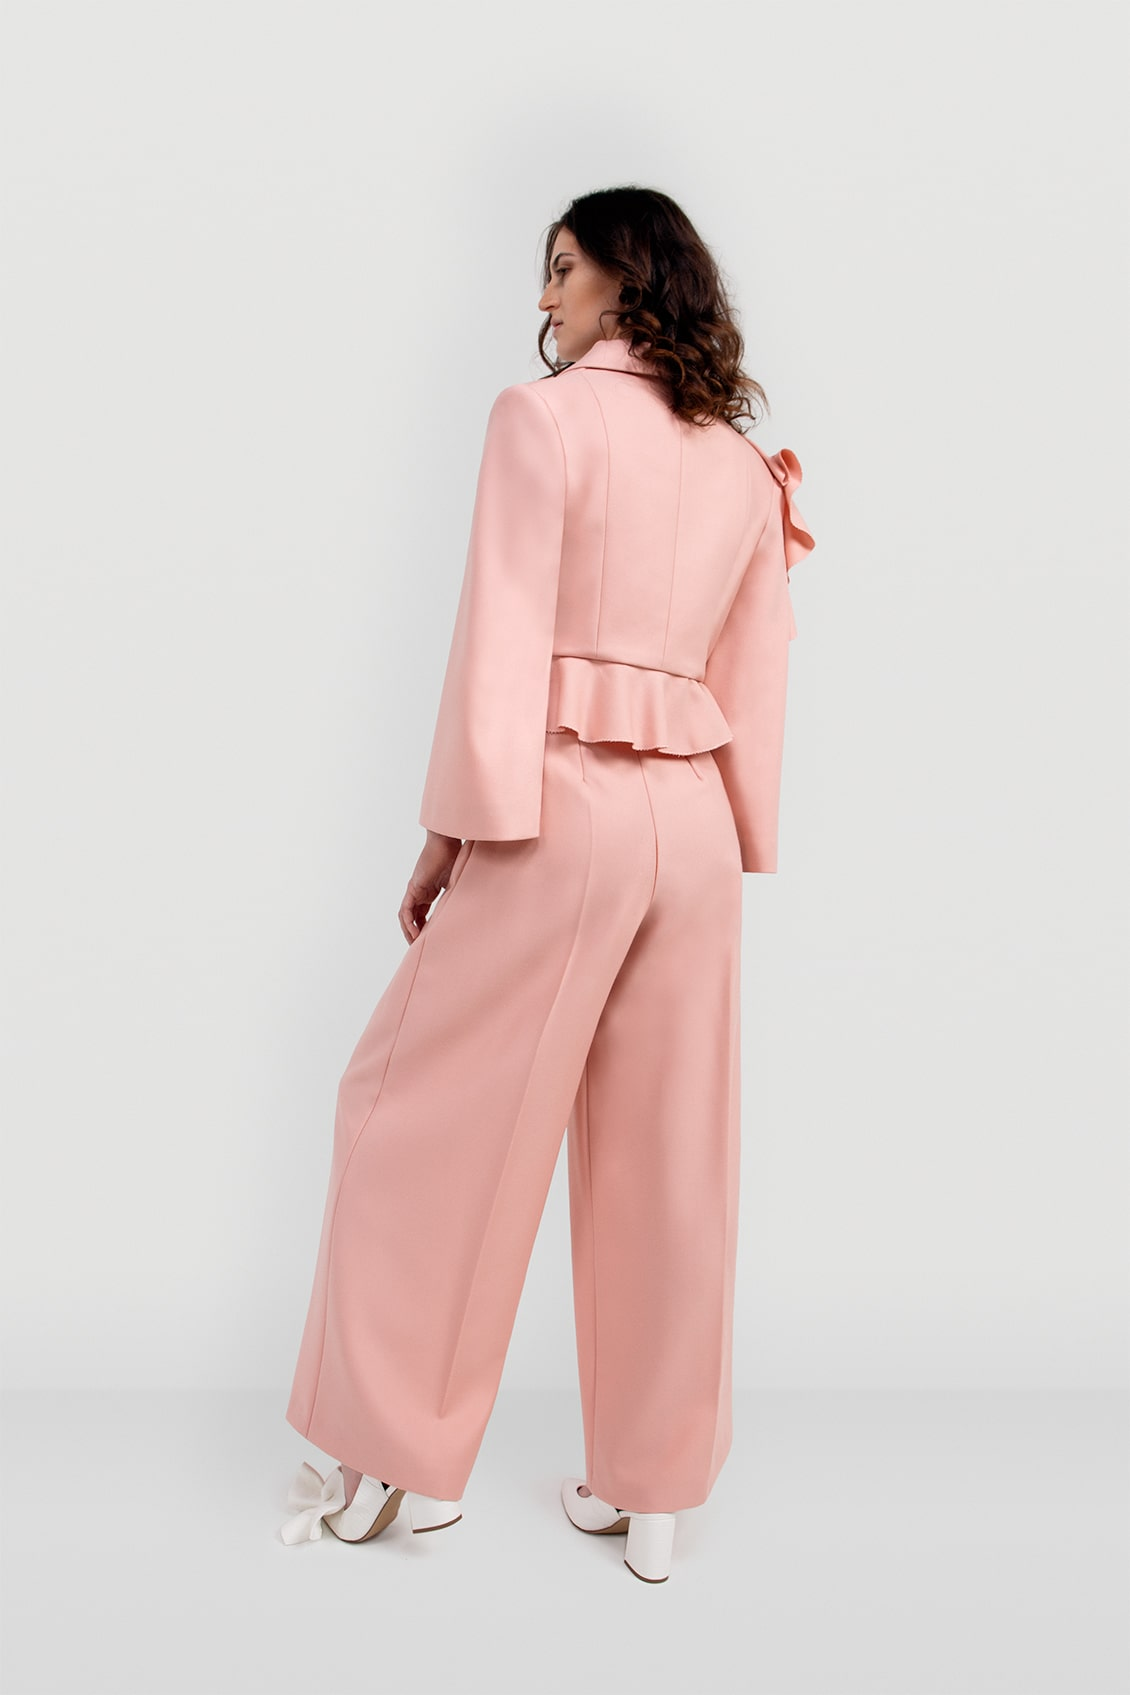 VALDONE Au - back of the wide sleeve shoulder-to-hem ruffle detail of the women's tailored suit jacket ALYSA in baby pink fine wool fabric.